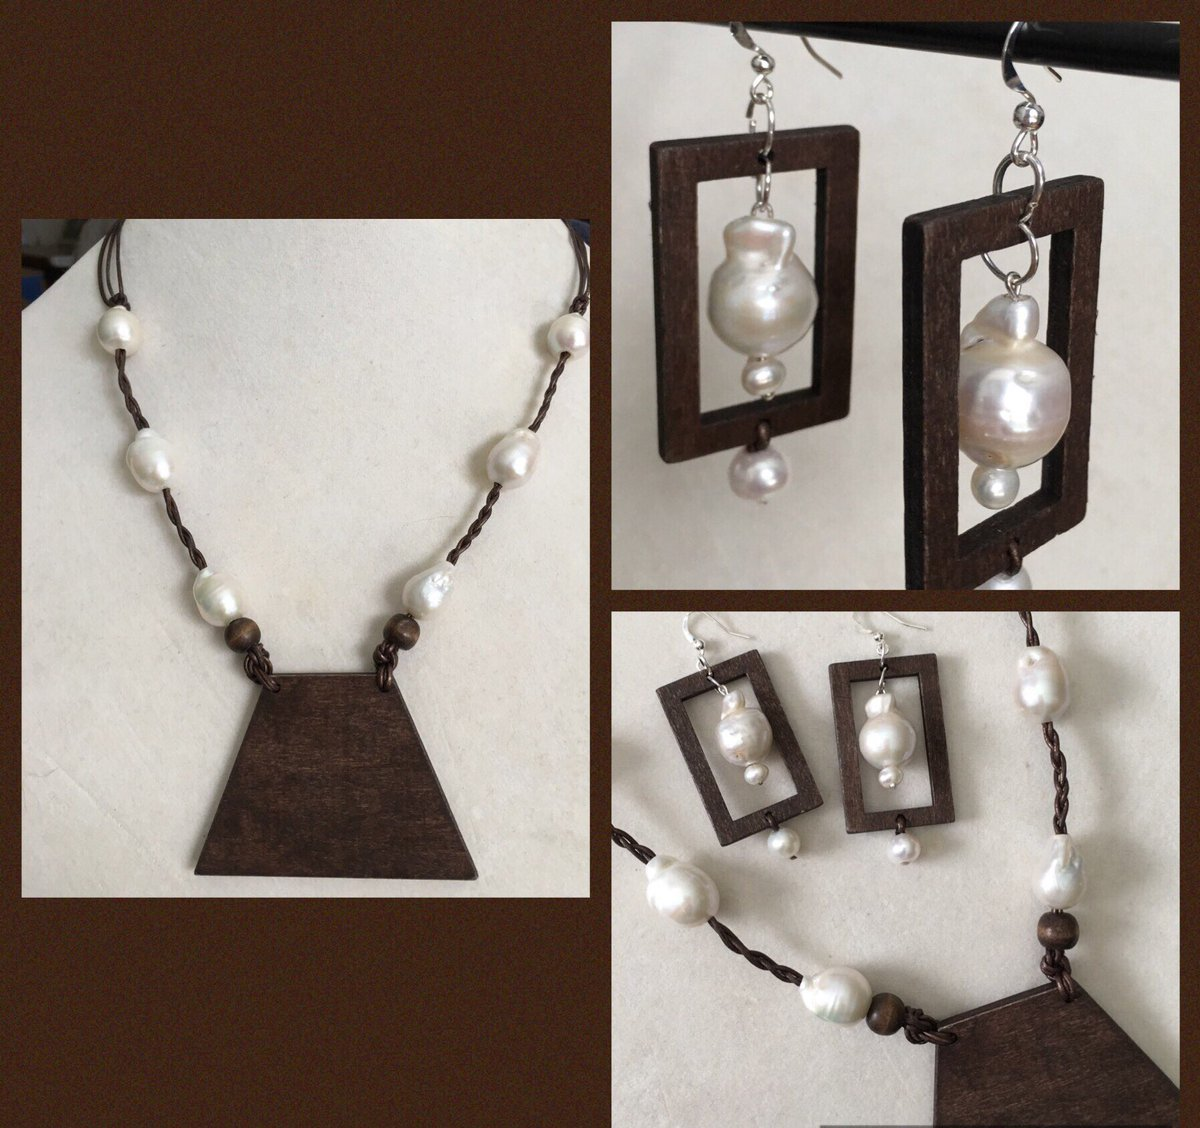 #bibnecklace #etsy #pearlnecklace #handmade #custompiece #pearlearrings #hugepearls #genuinepearls #baroquepearls  https://etsy.me/2USFliY pic.twitter.com/ZwHlBUQOfY